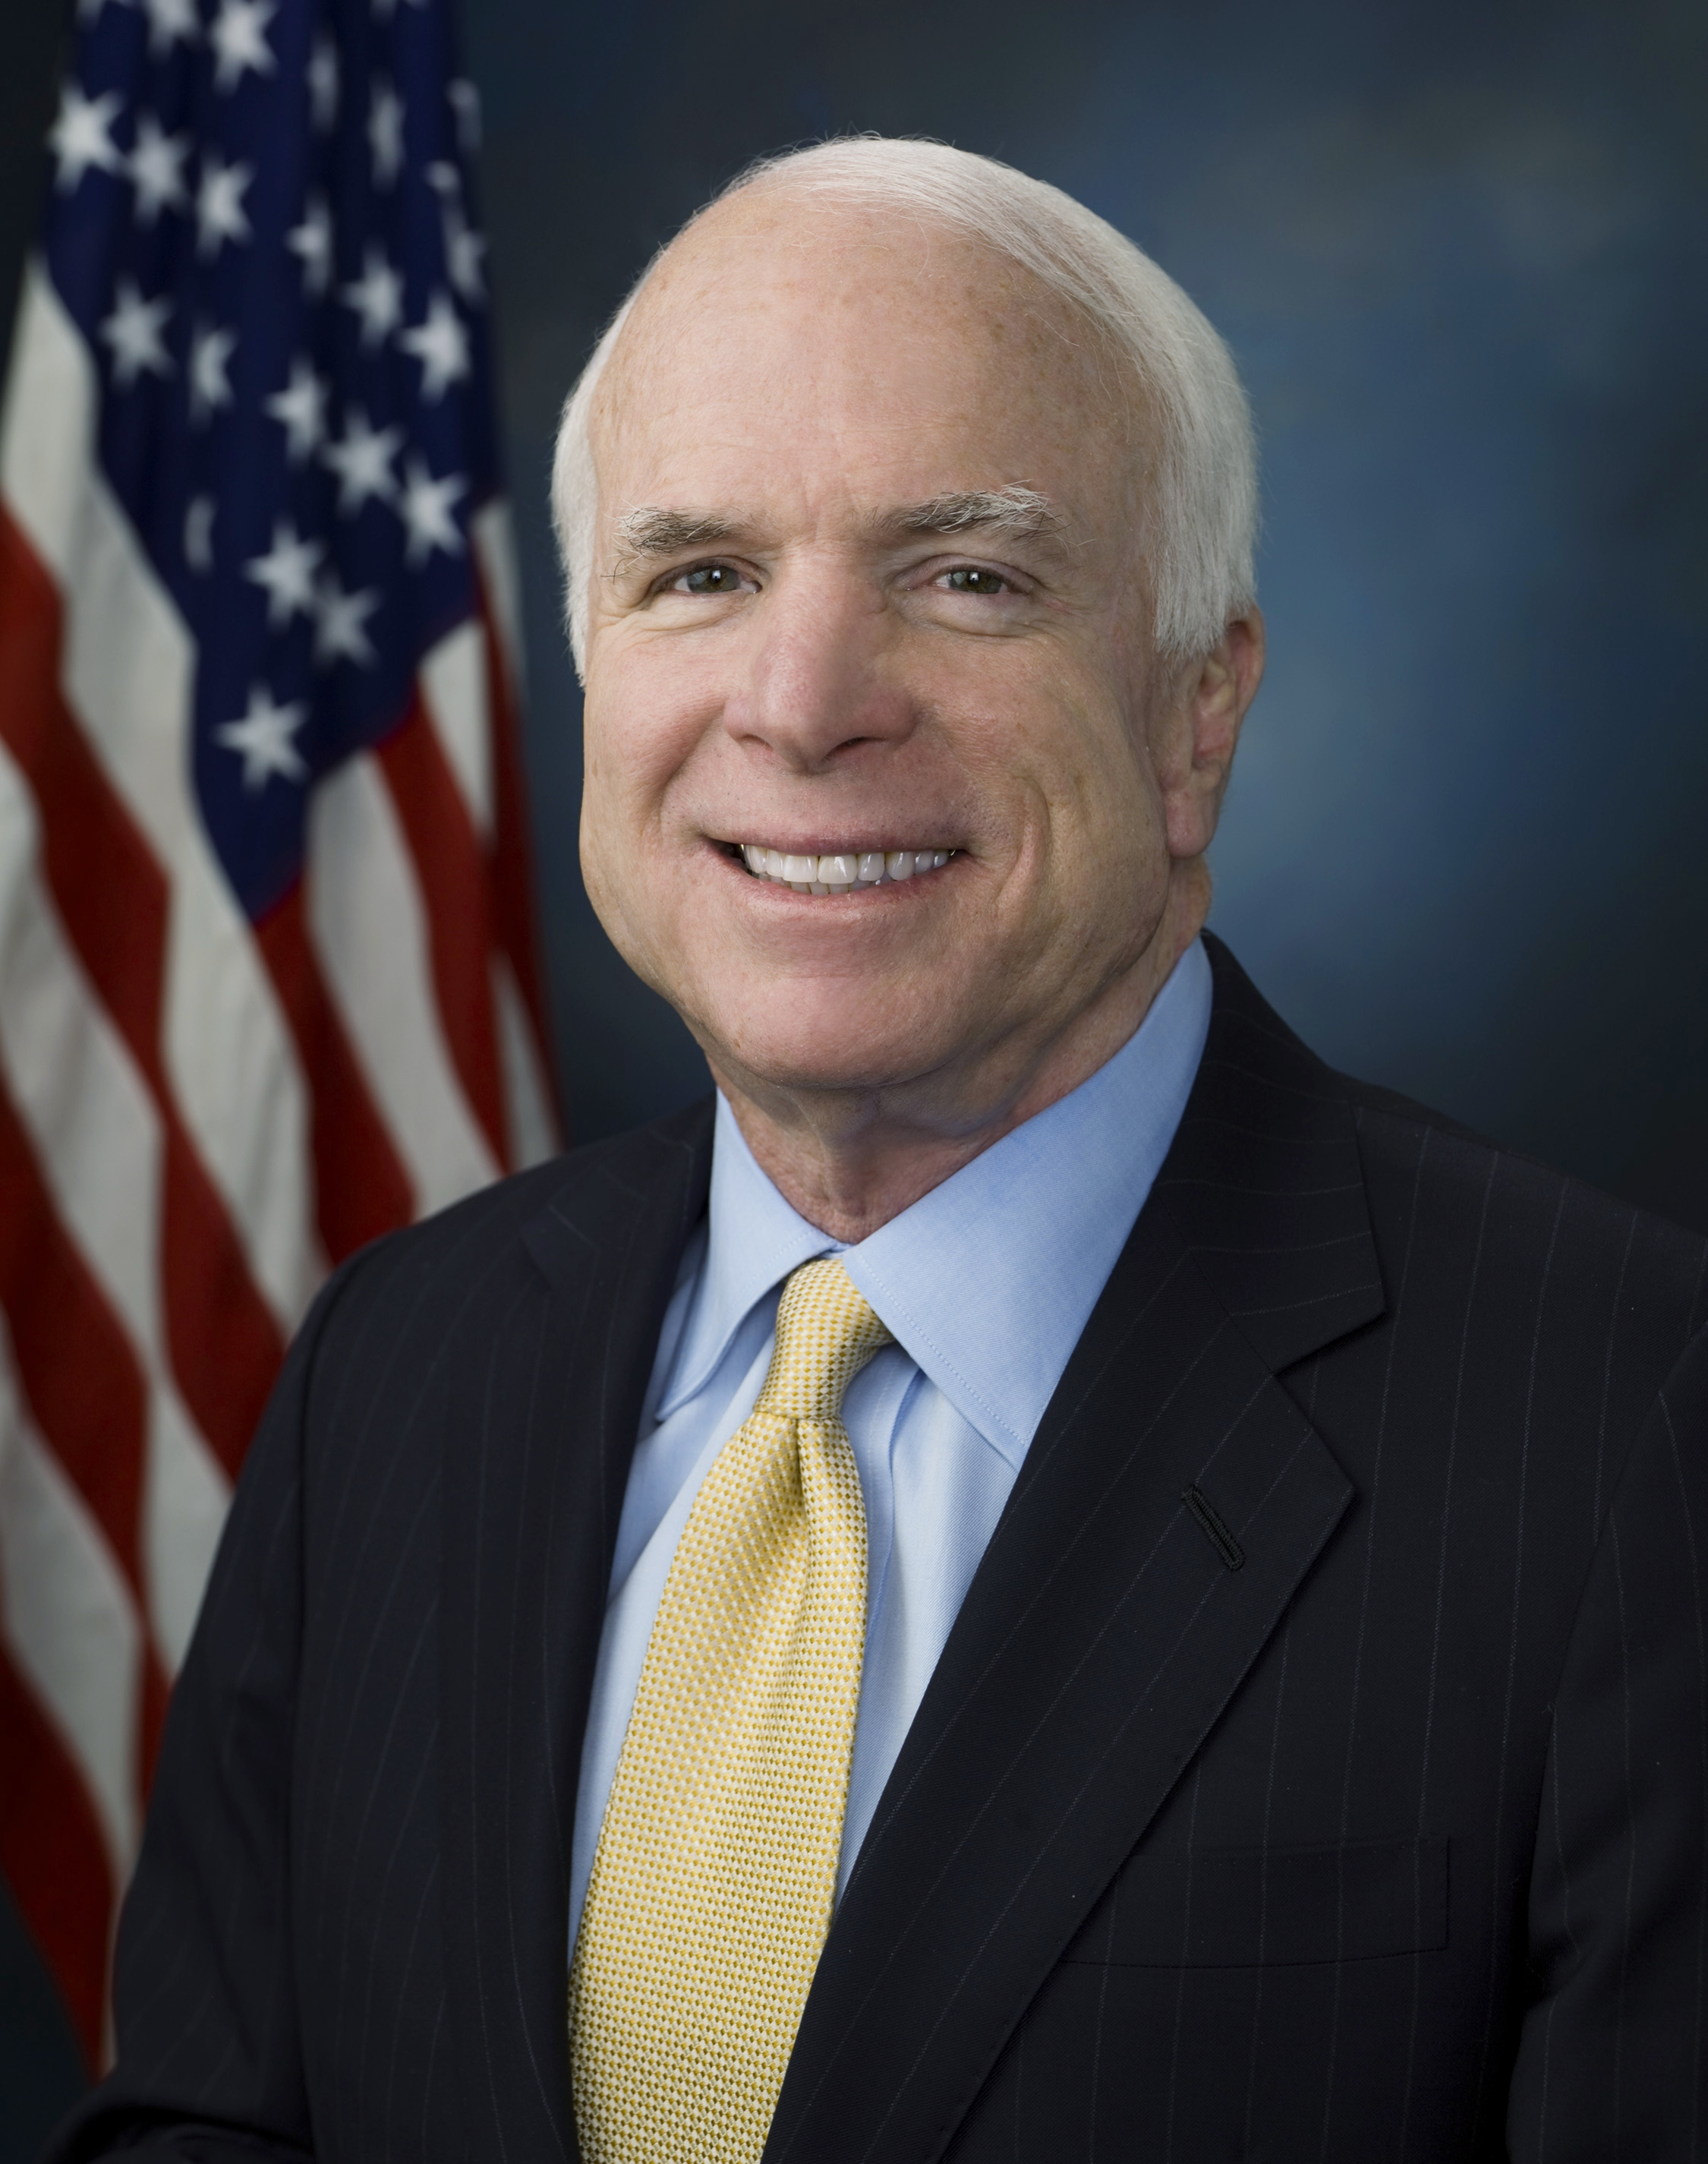 Senator John McCain supports state regulation of sports betting